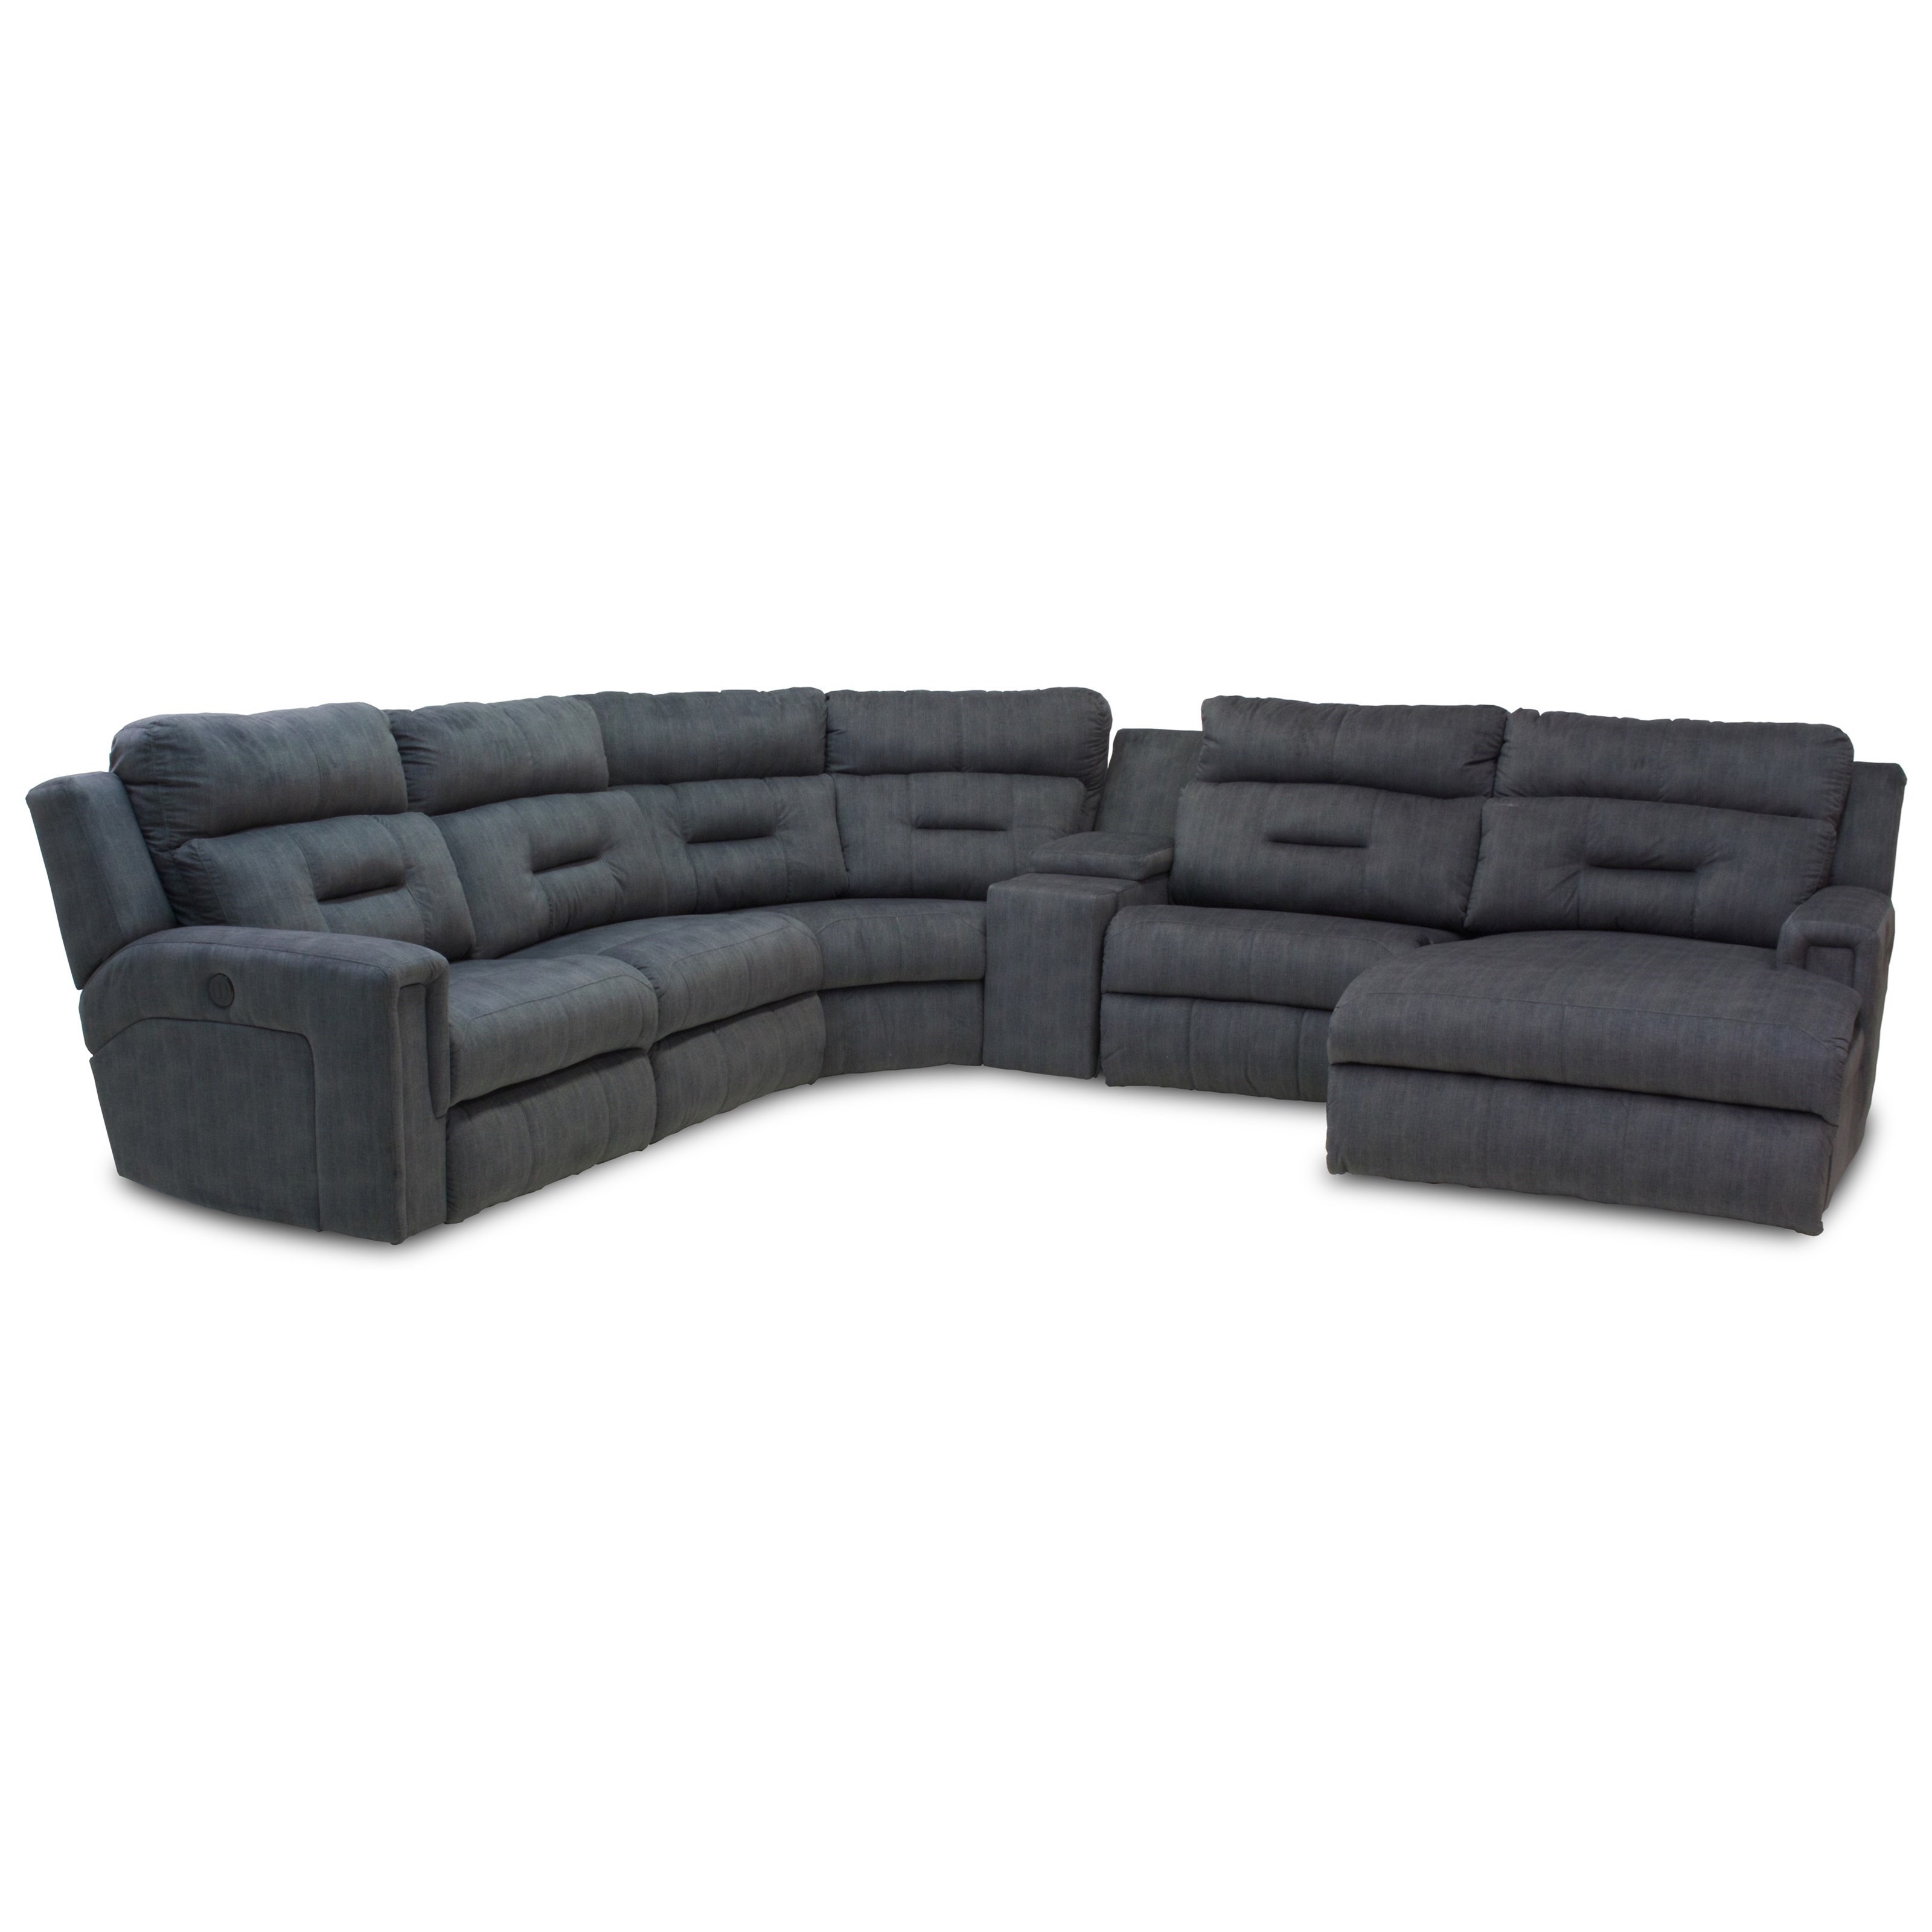 Excel Five Seat Reclining Sectional with Chaise by Southern Motion at Pilgrim Furniture City